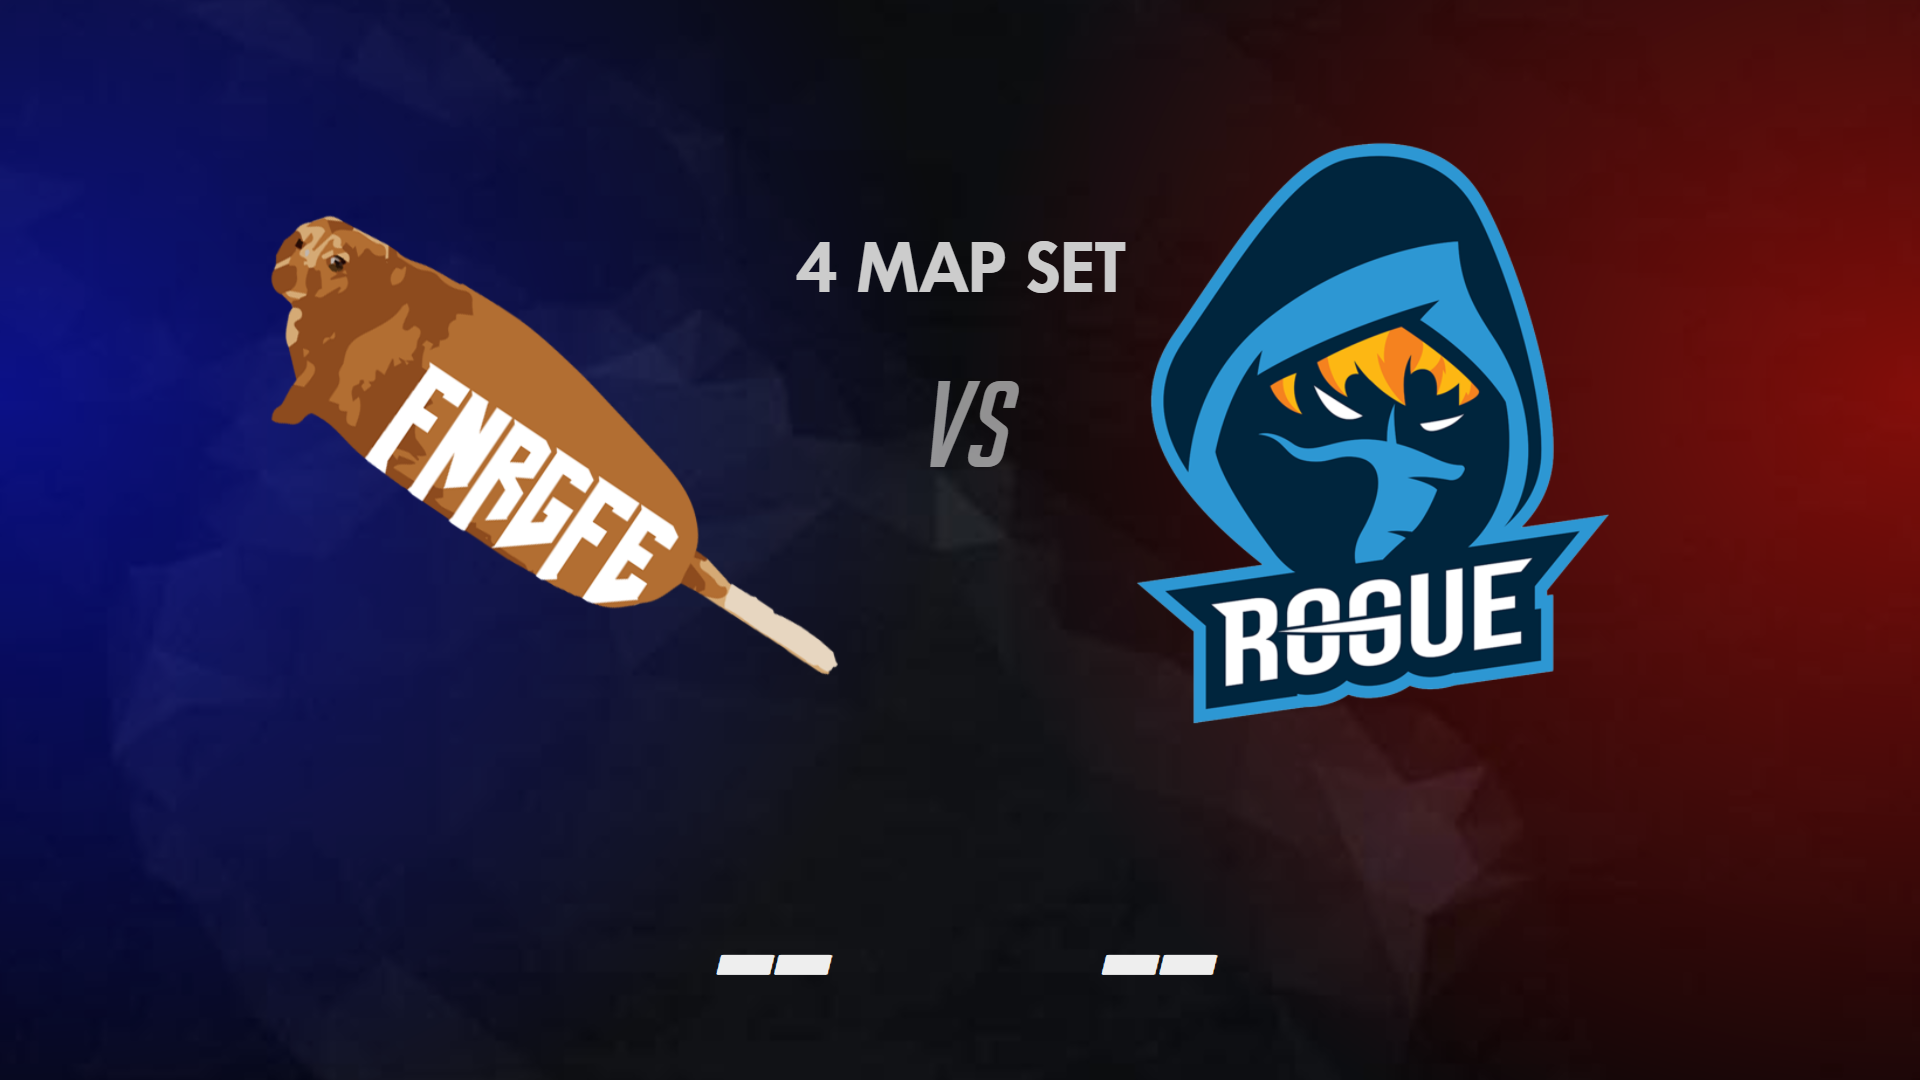 FNRGFE have played very closely in their match-ups.